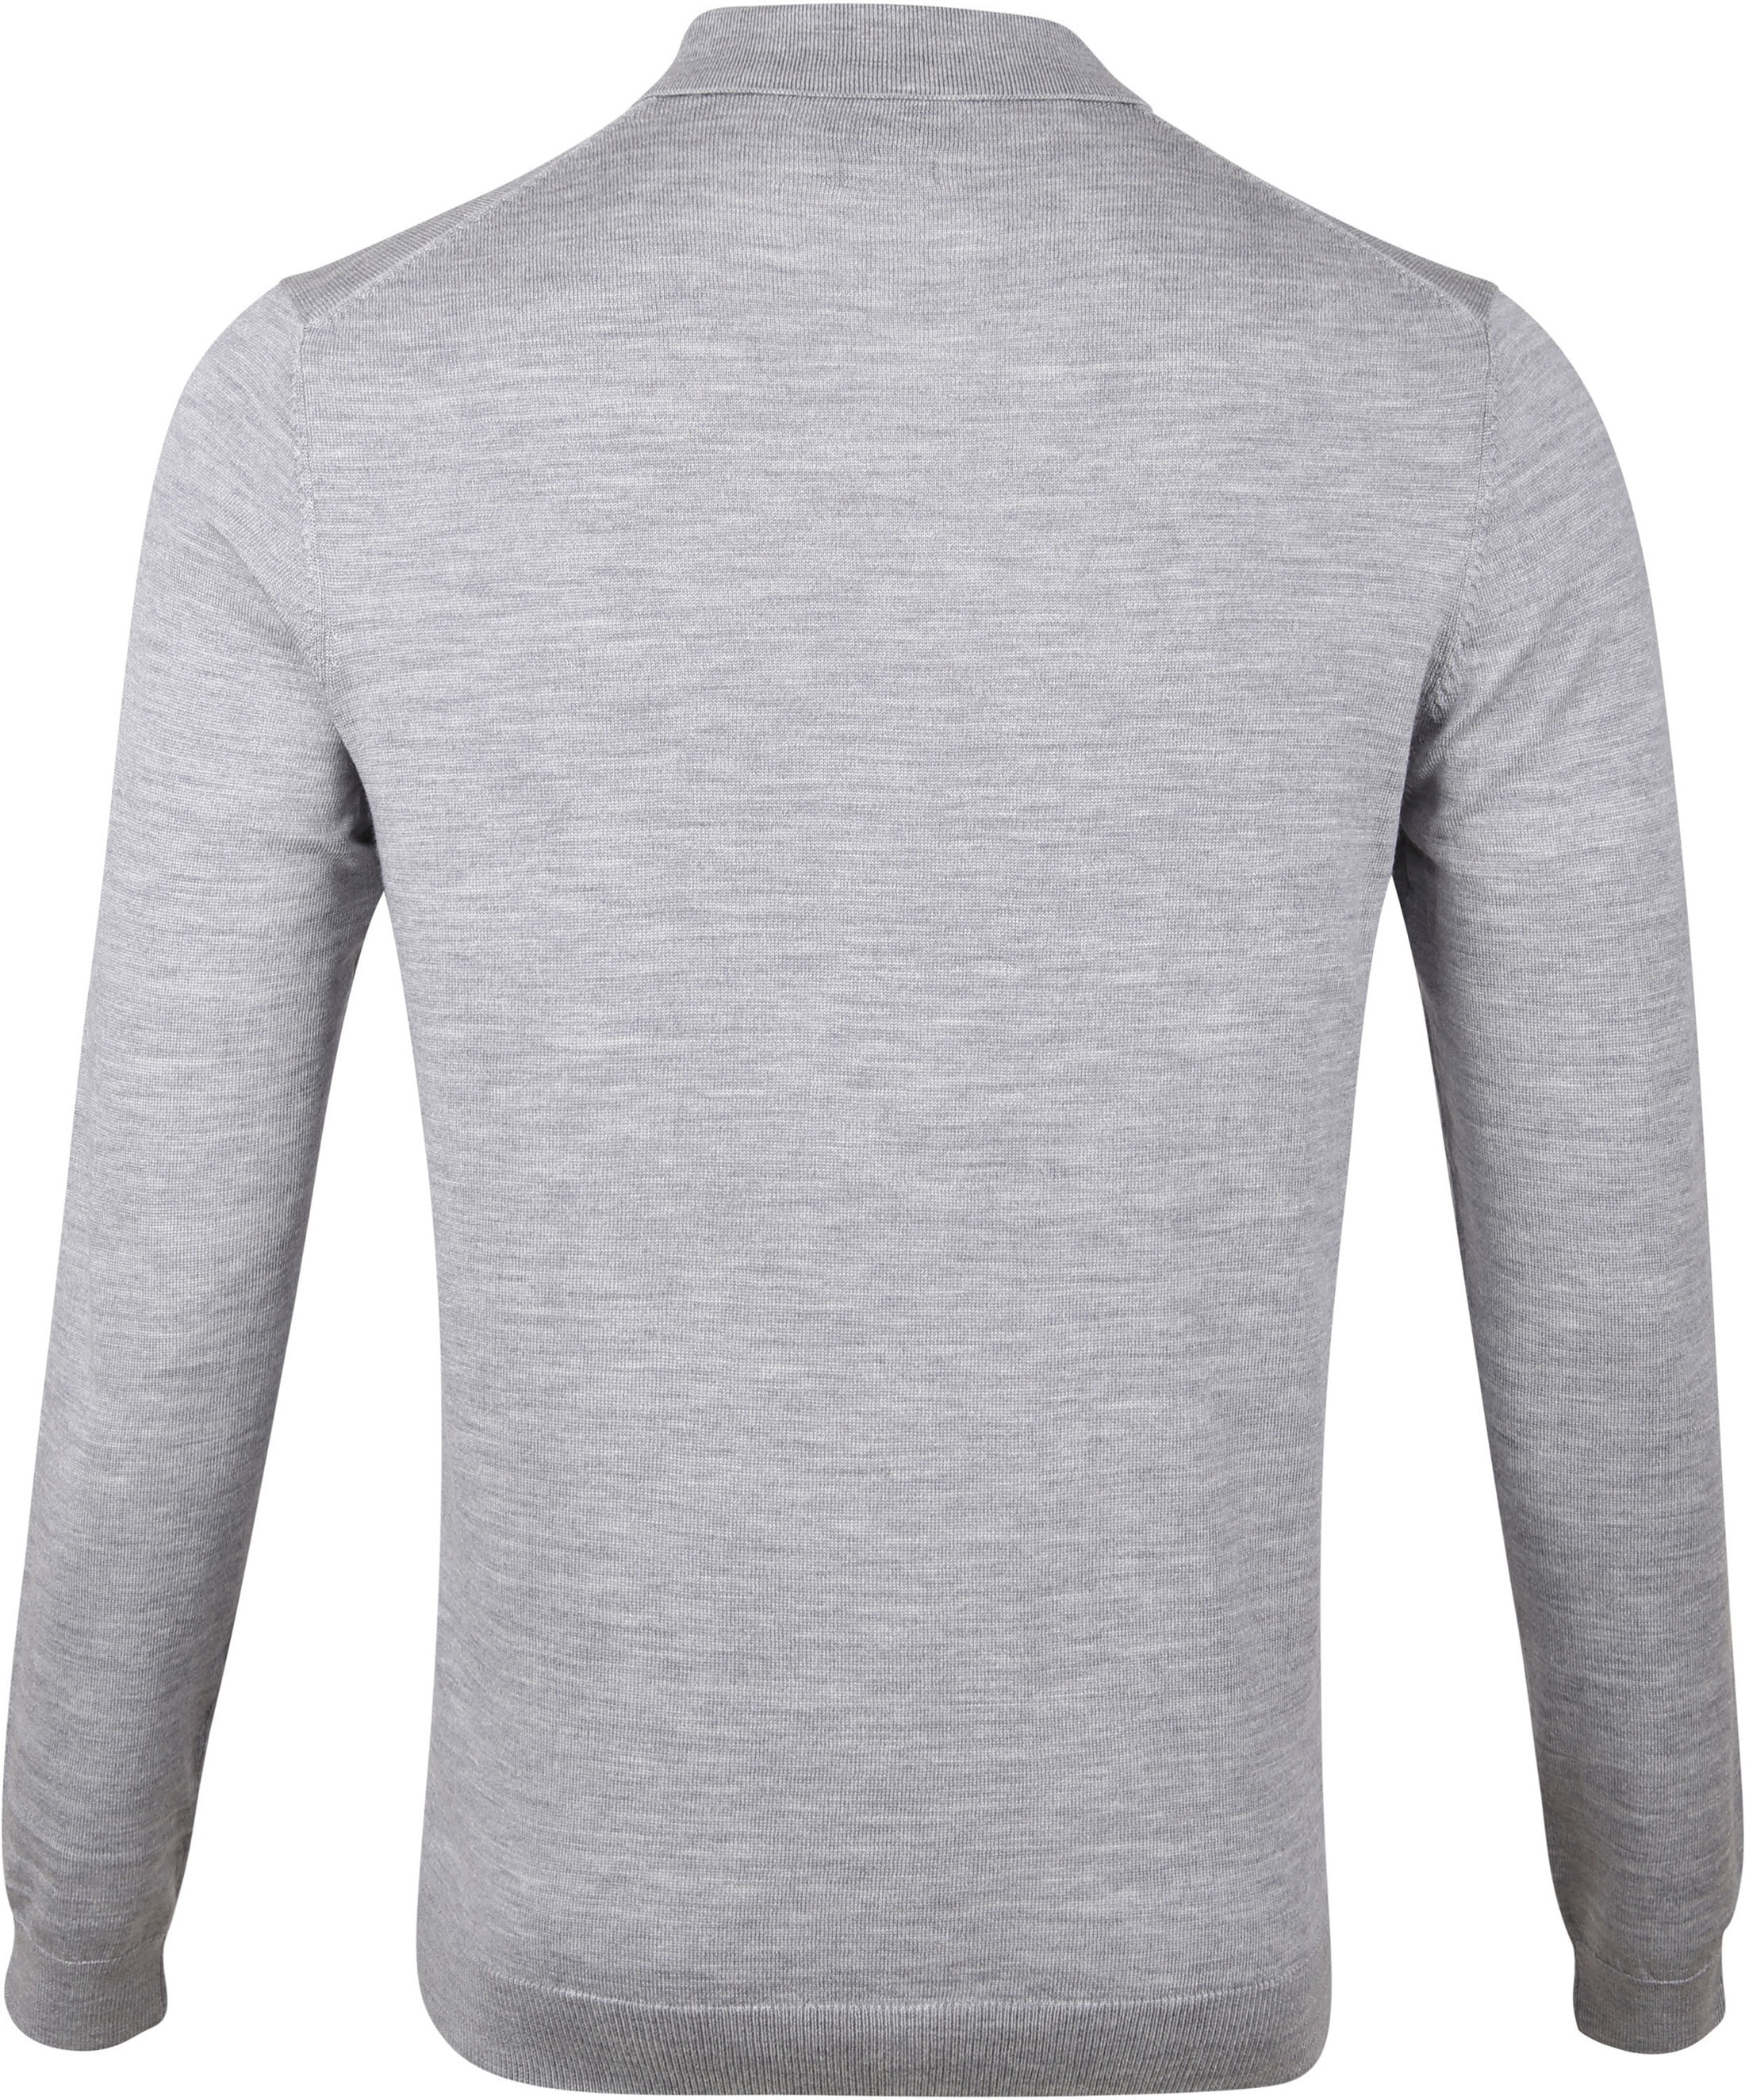 Profuomo Merino Poloshirt Grey photo 2